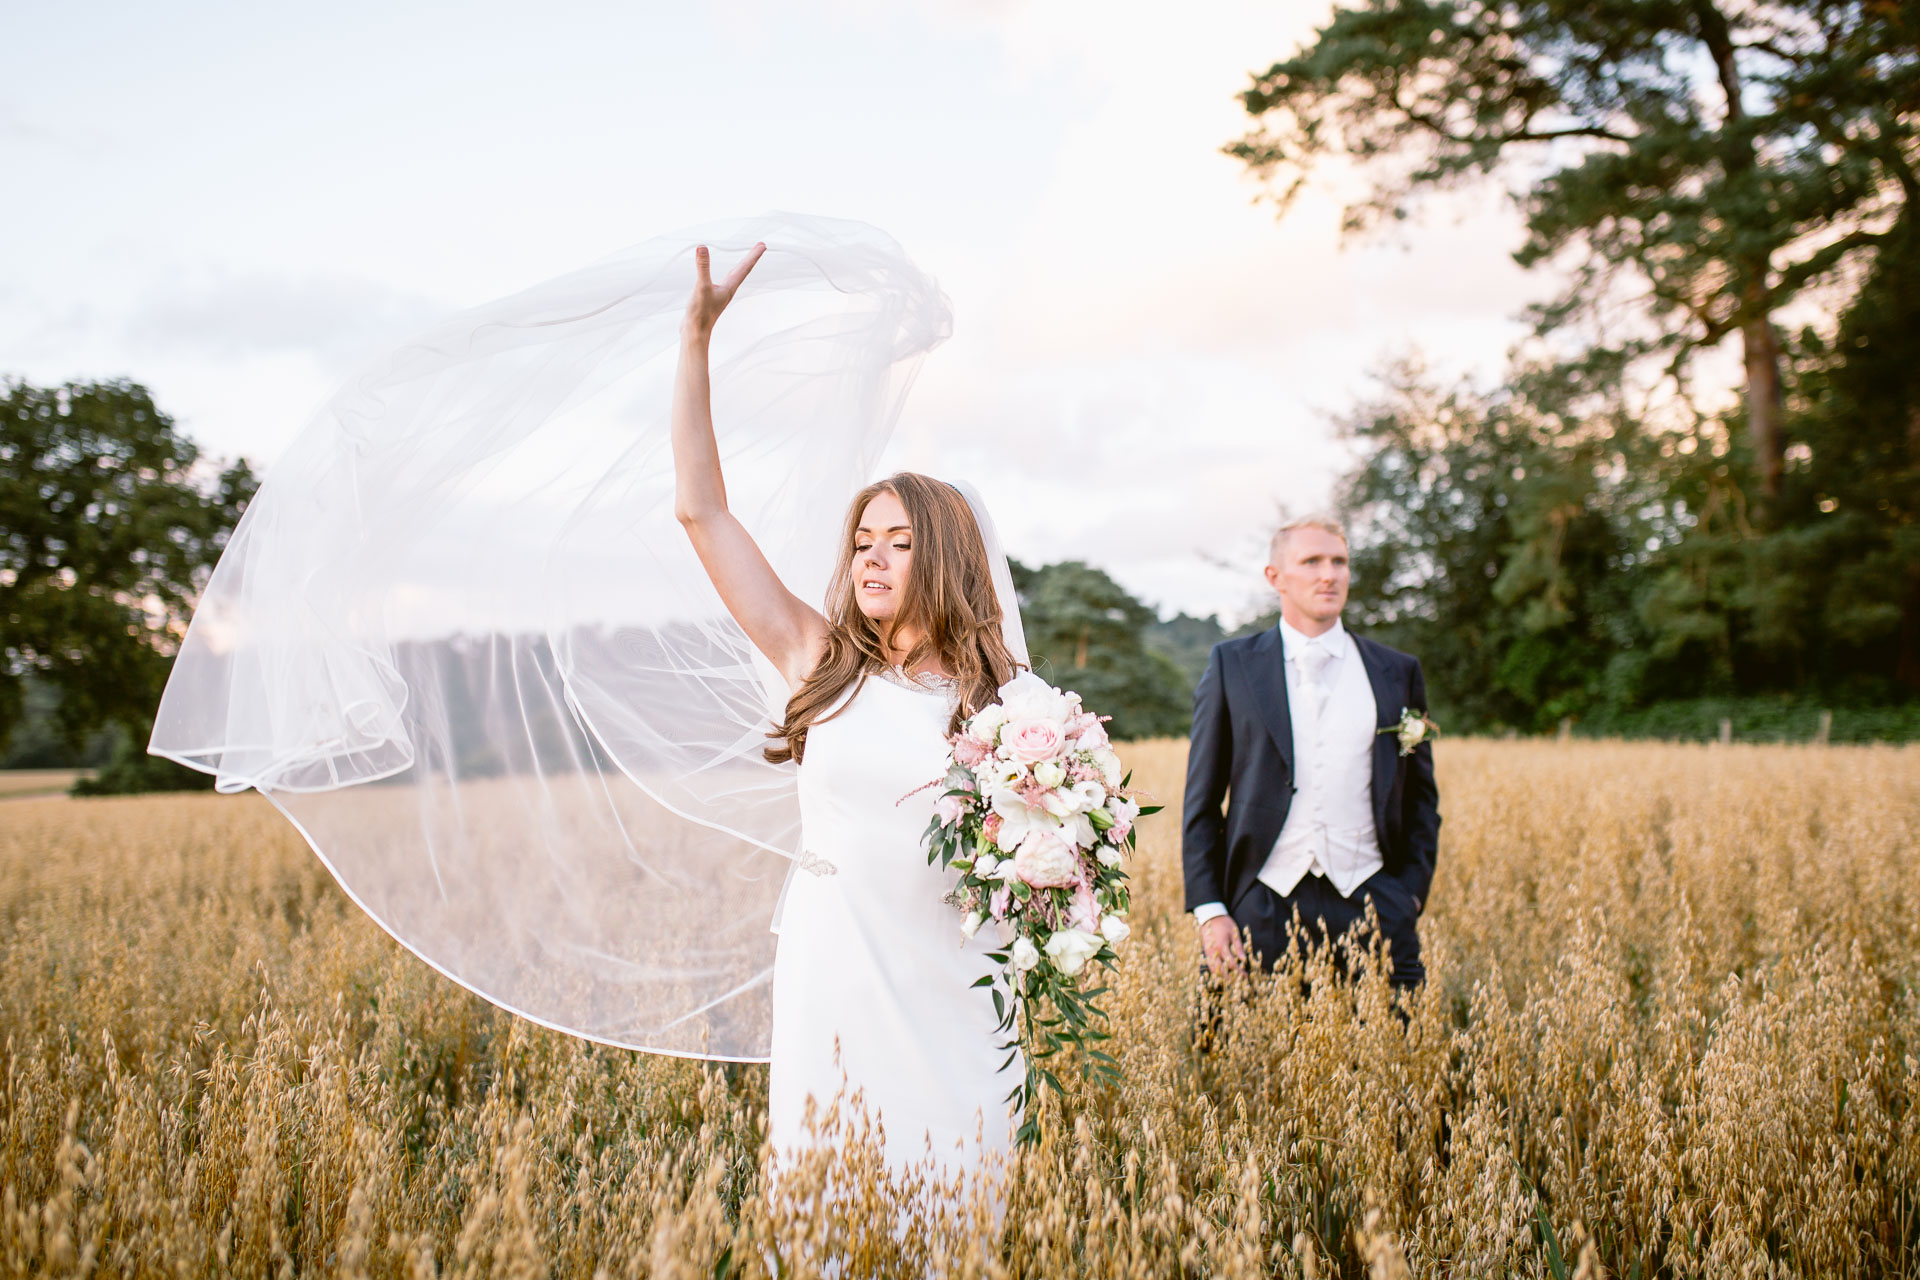 The Citadel wedding Shropshire Sarah_Jane and Steve bride and groom standing in the fields and throwing the veil